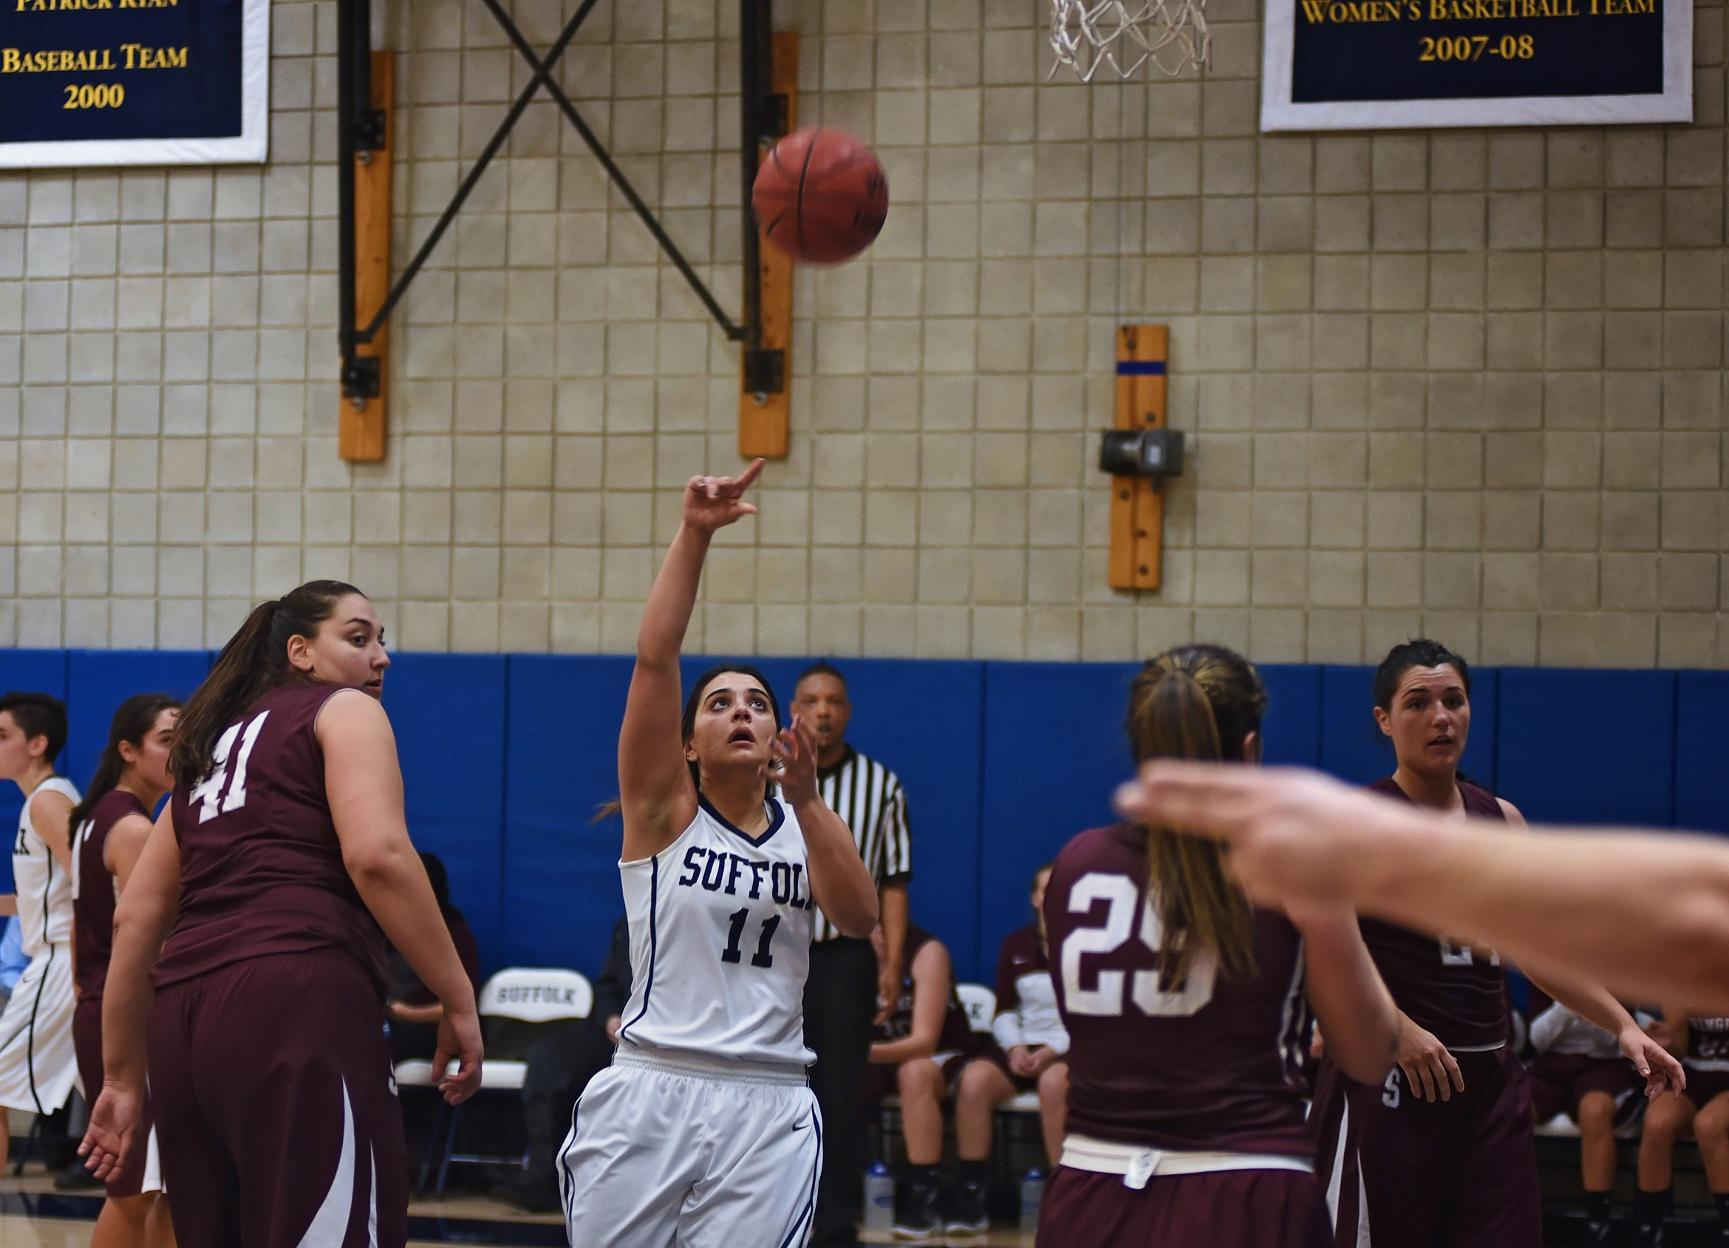 Comeback Falls Short for Women's Basketball at JWU